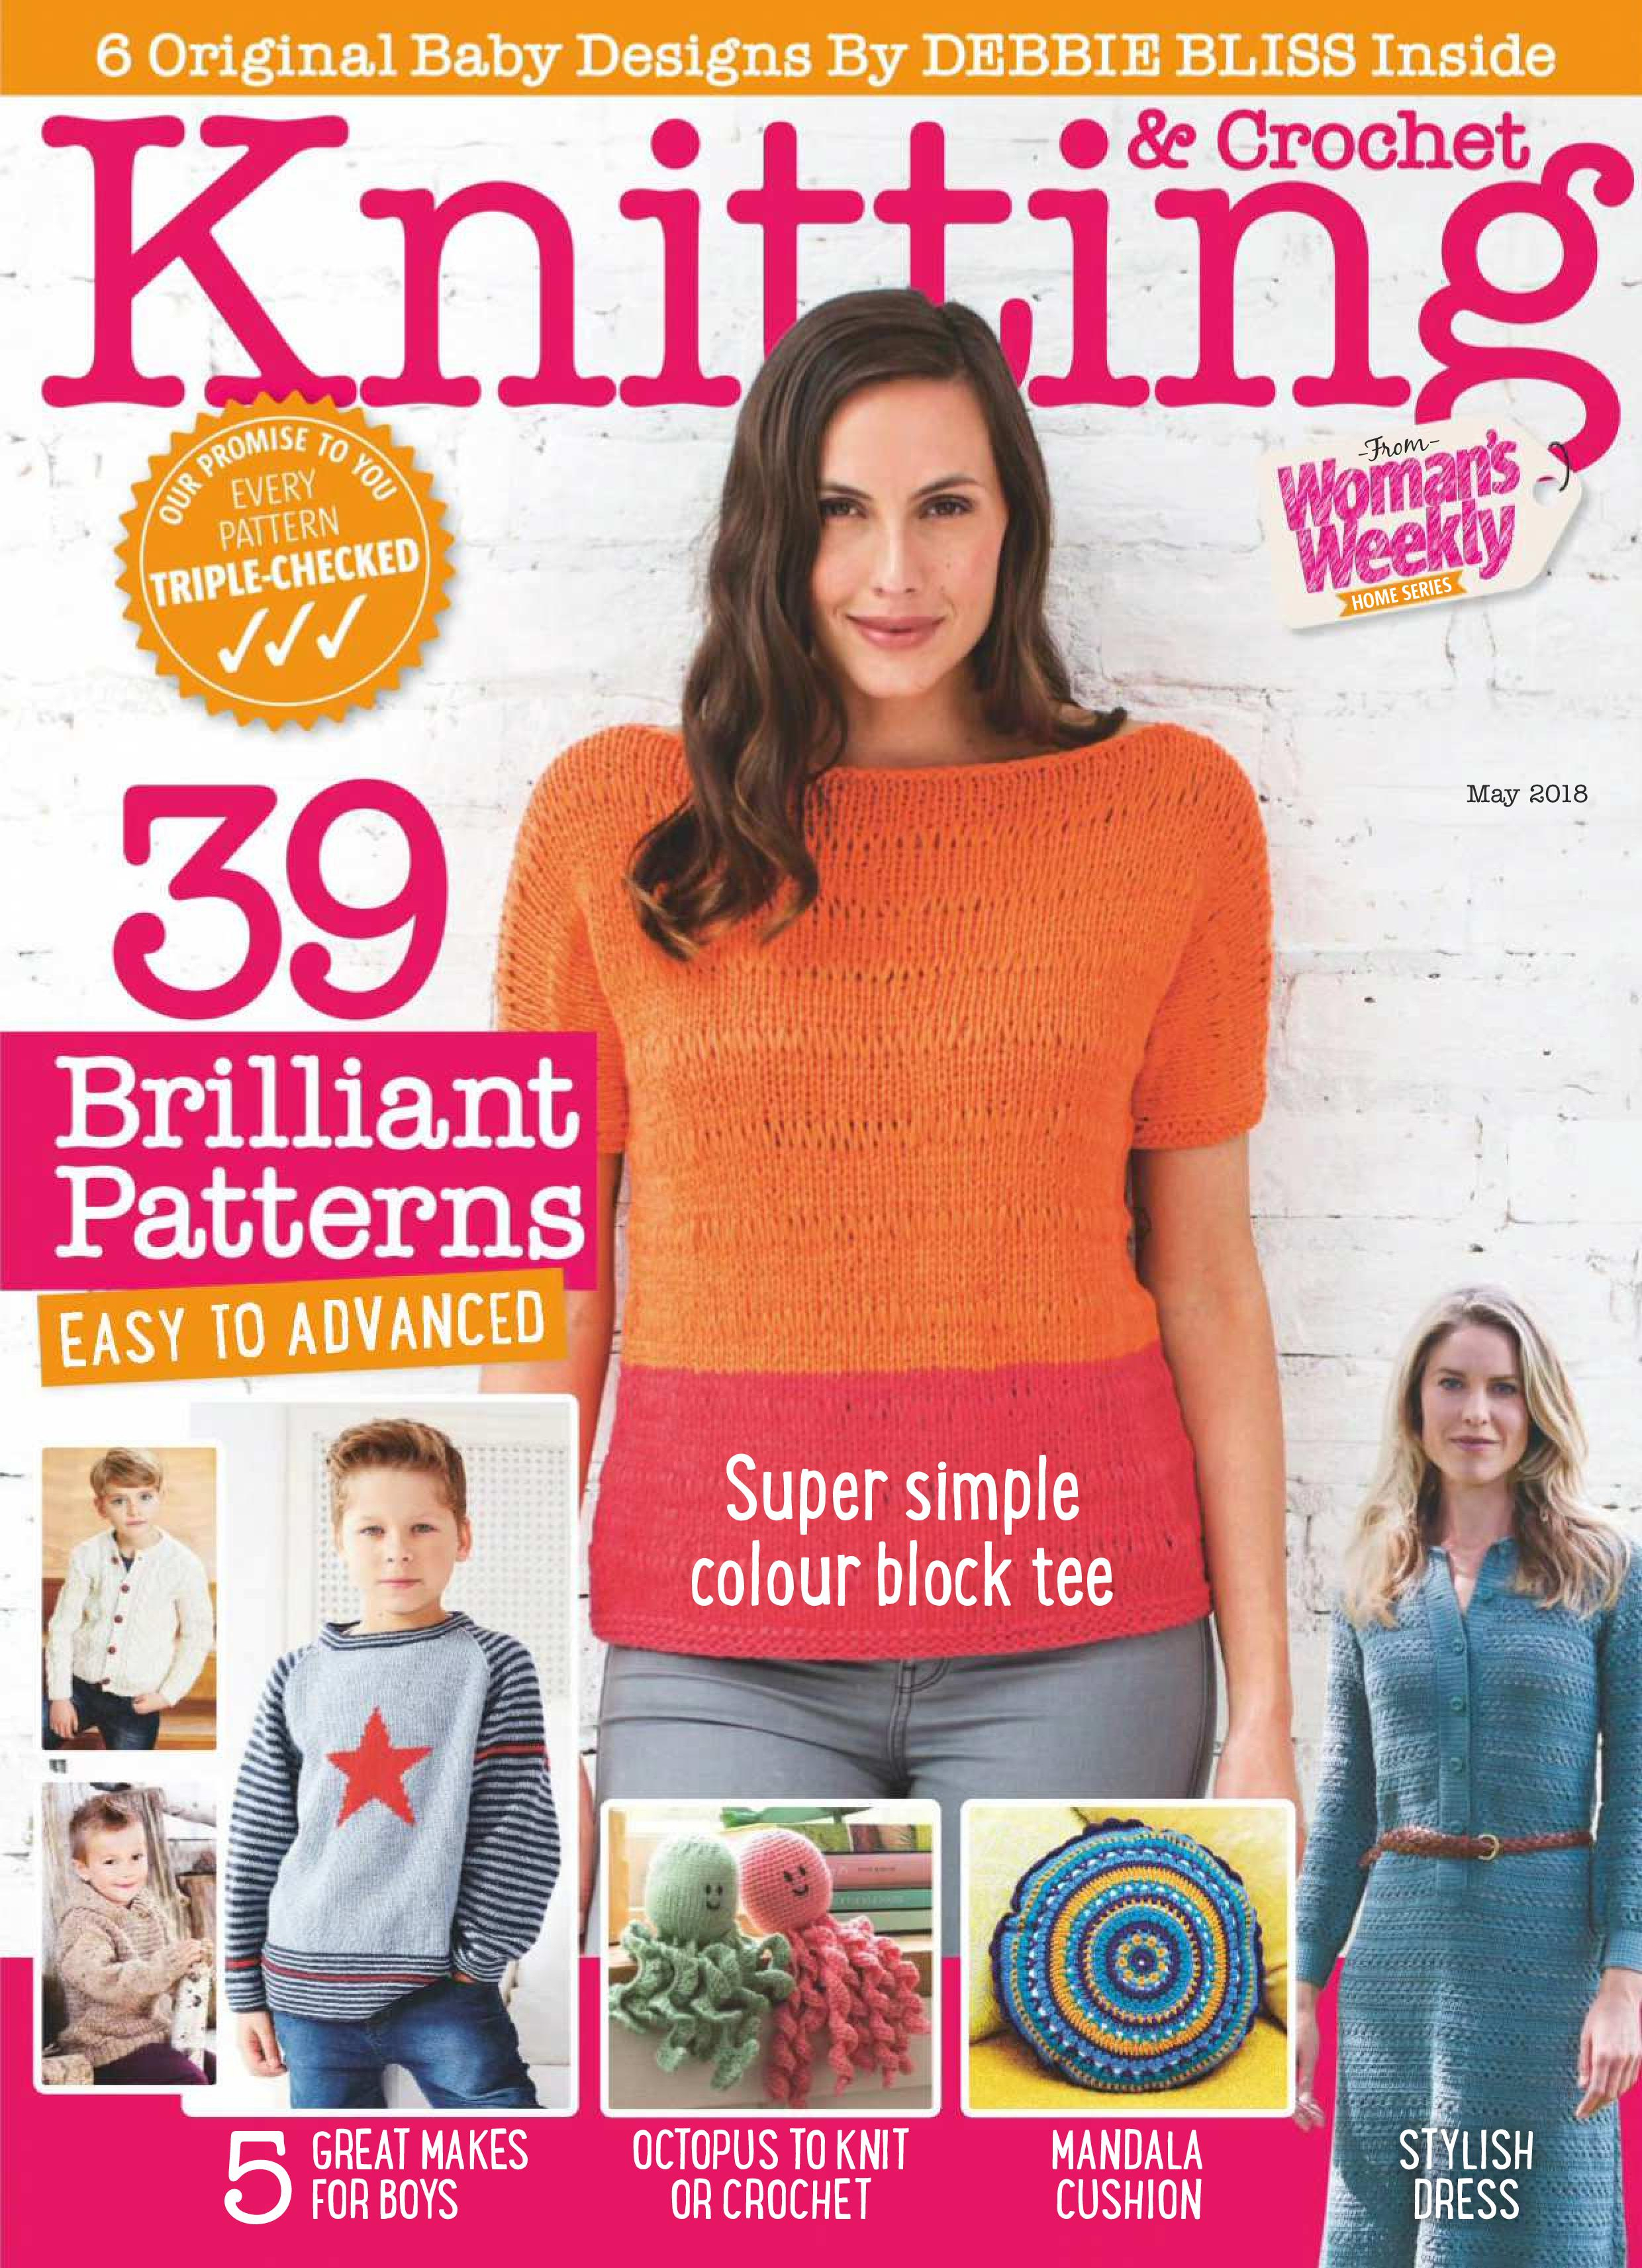 Woman Weekly Knitting Patterns Download Knitting Crochet From Womans Weekly May 2018 Softarchive